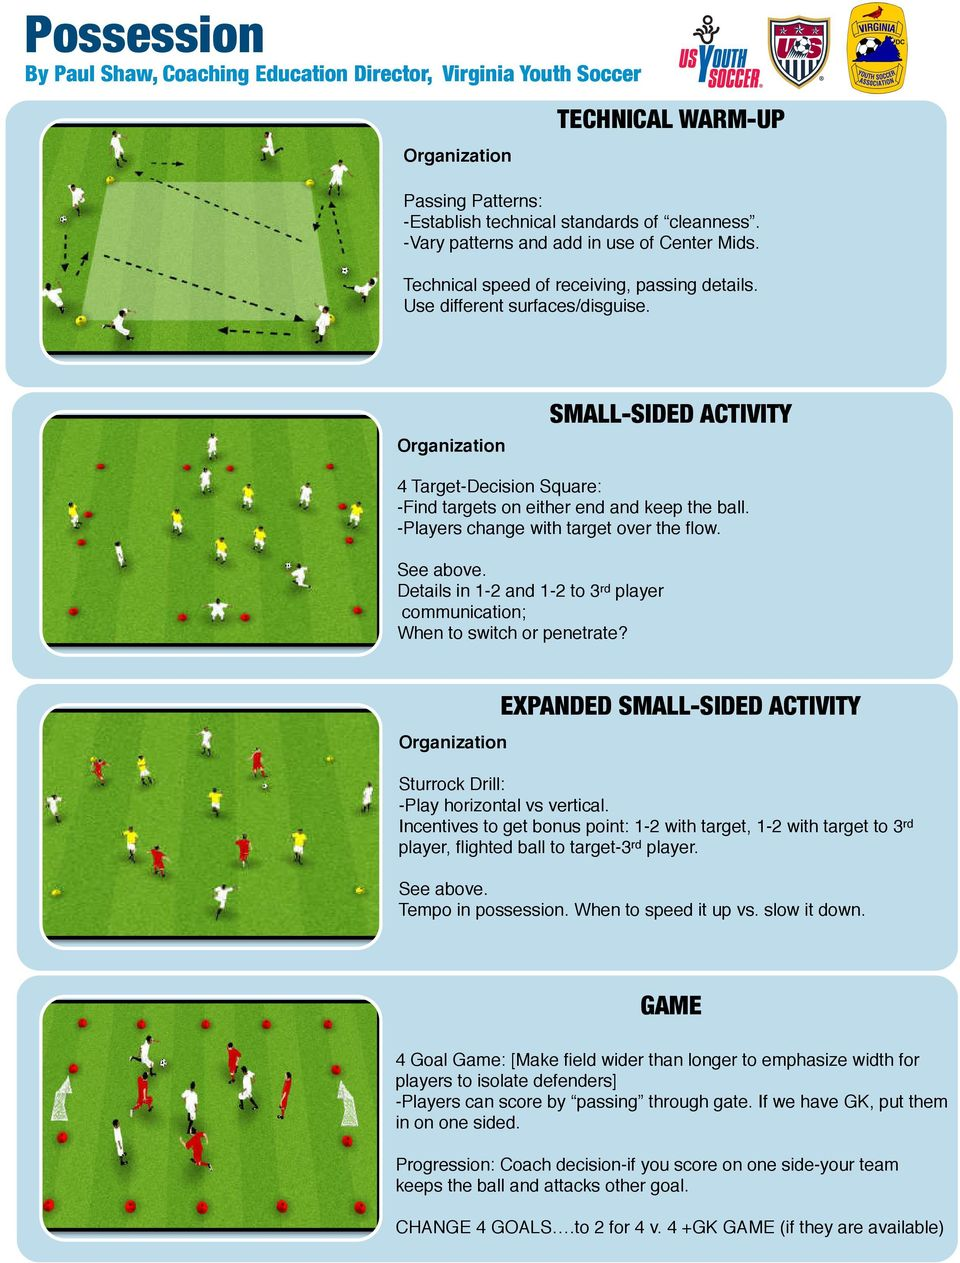 Organization SMALL-SIDED ACTIVITY 4 Target-Decision Square: -Find targets on either end and keep the ball. -Players change with target over the flow. See above.